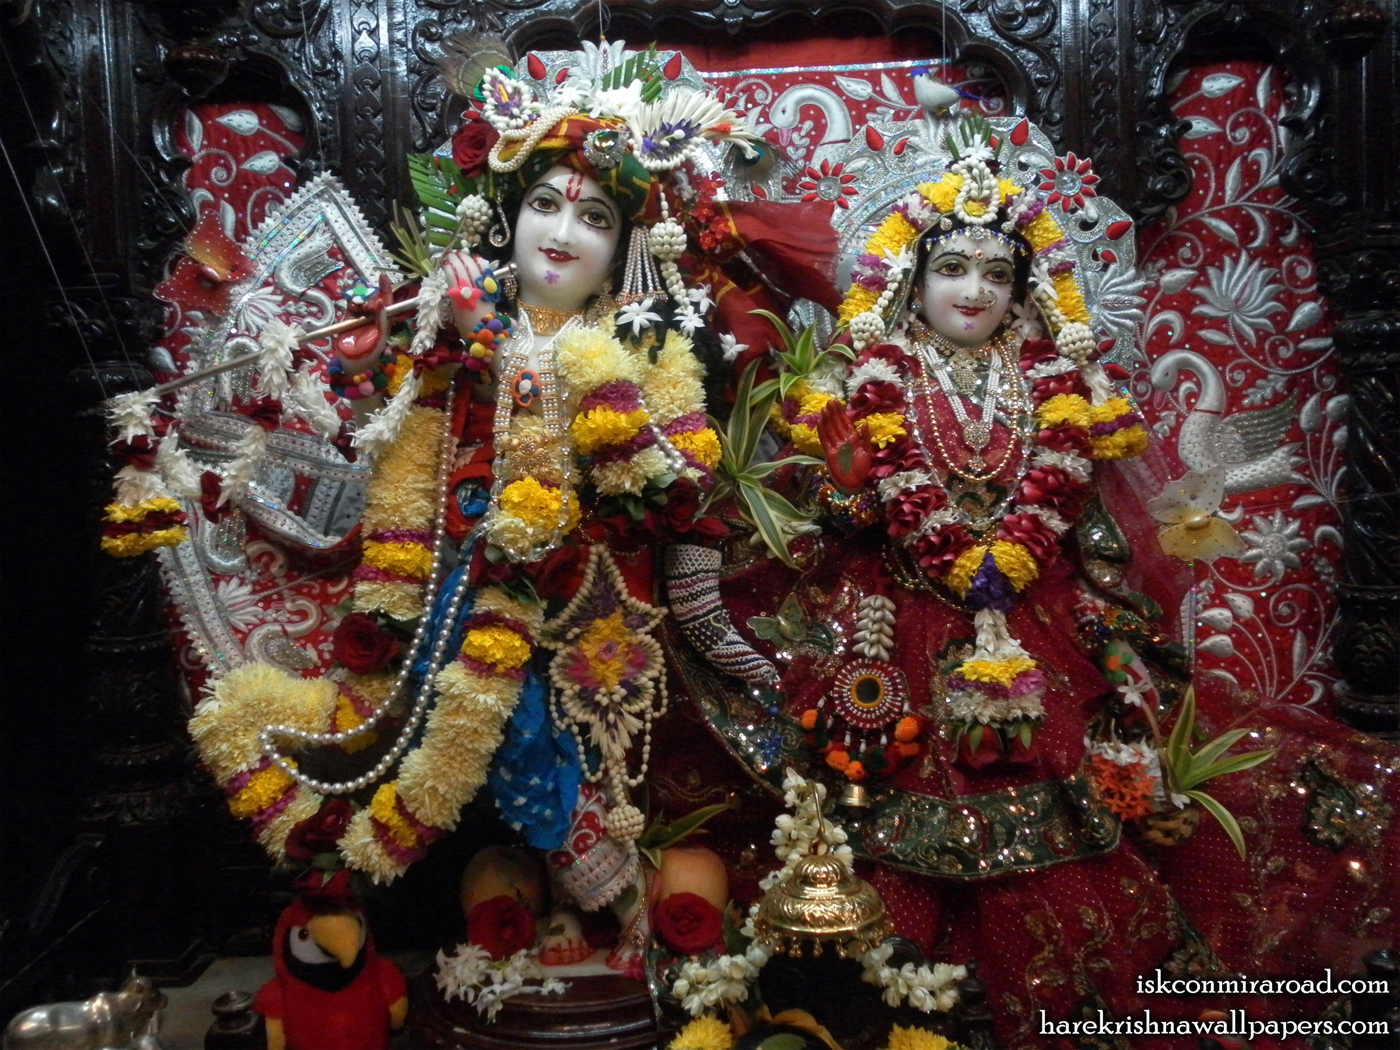 Sri Sri Radha Giridhari Wallpaper (011) Size 1400x1050 Download